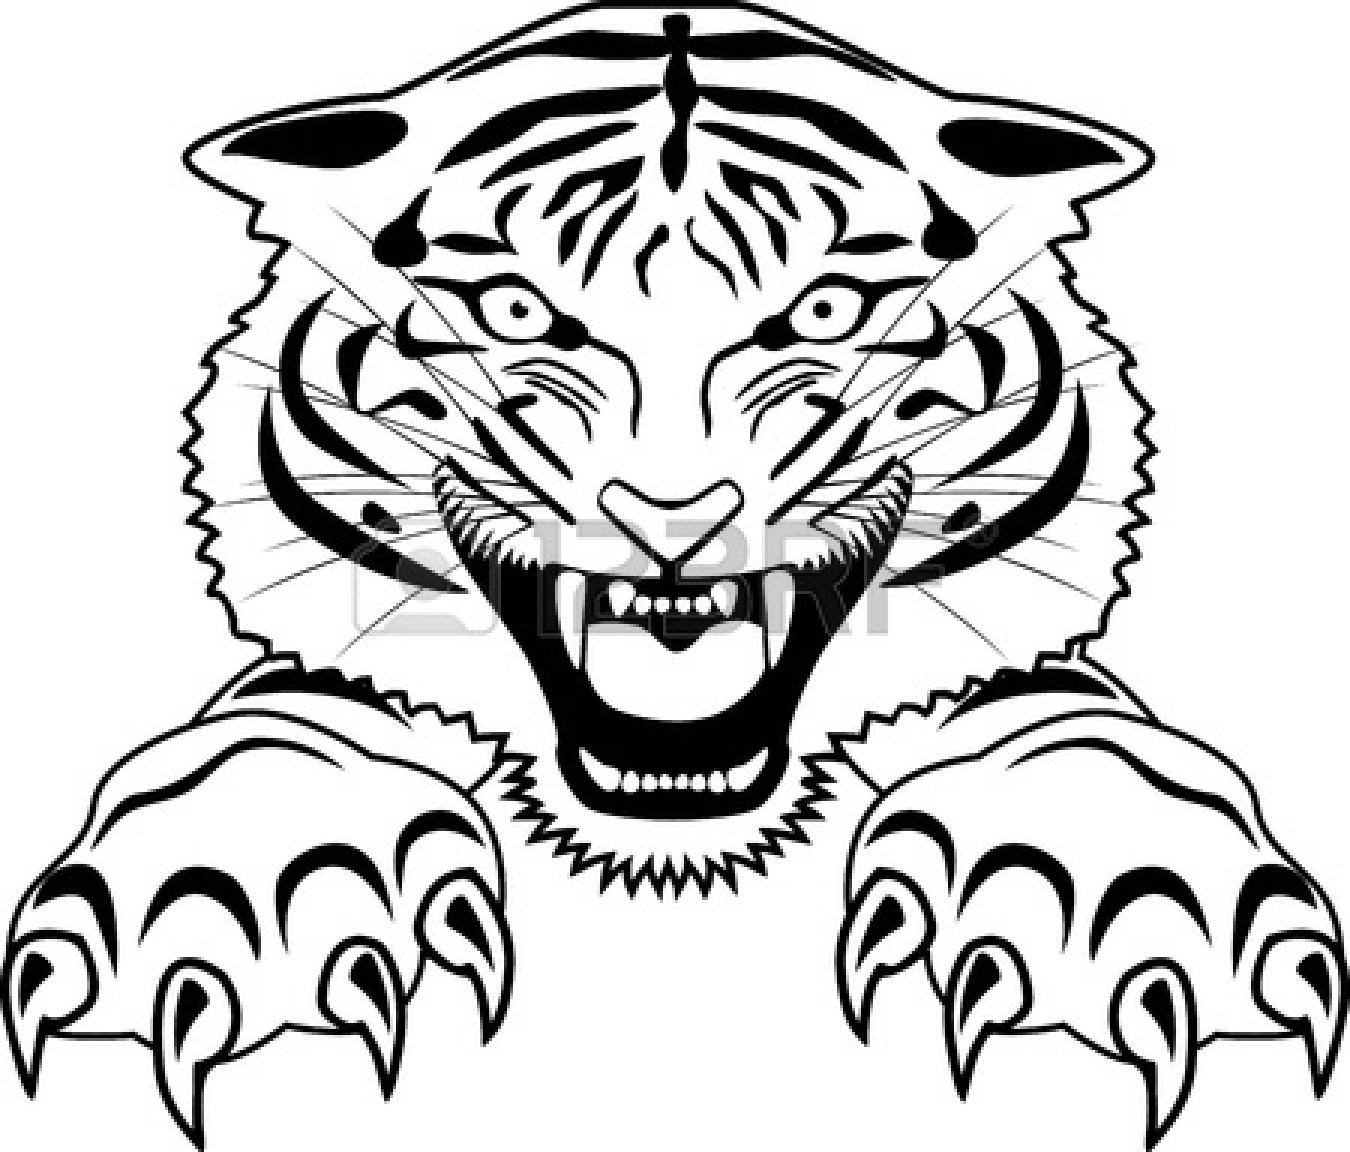 Jumping Tiger Tattoo